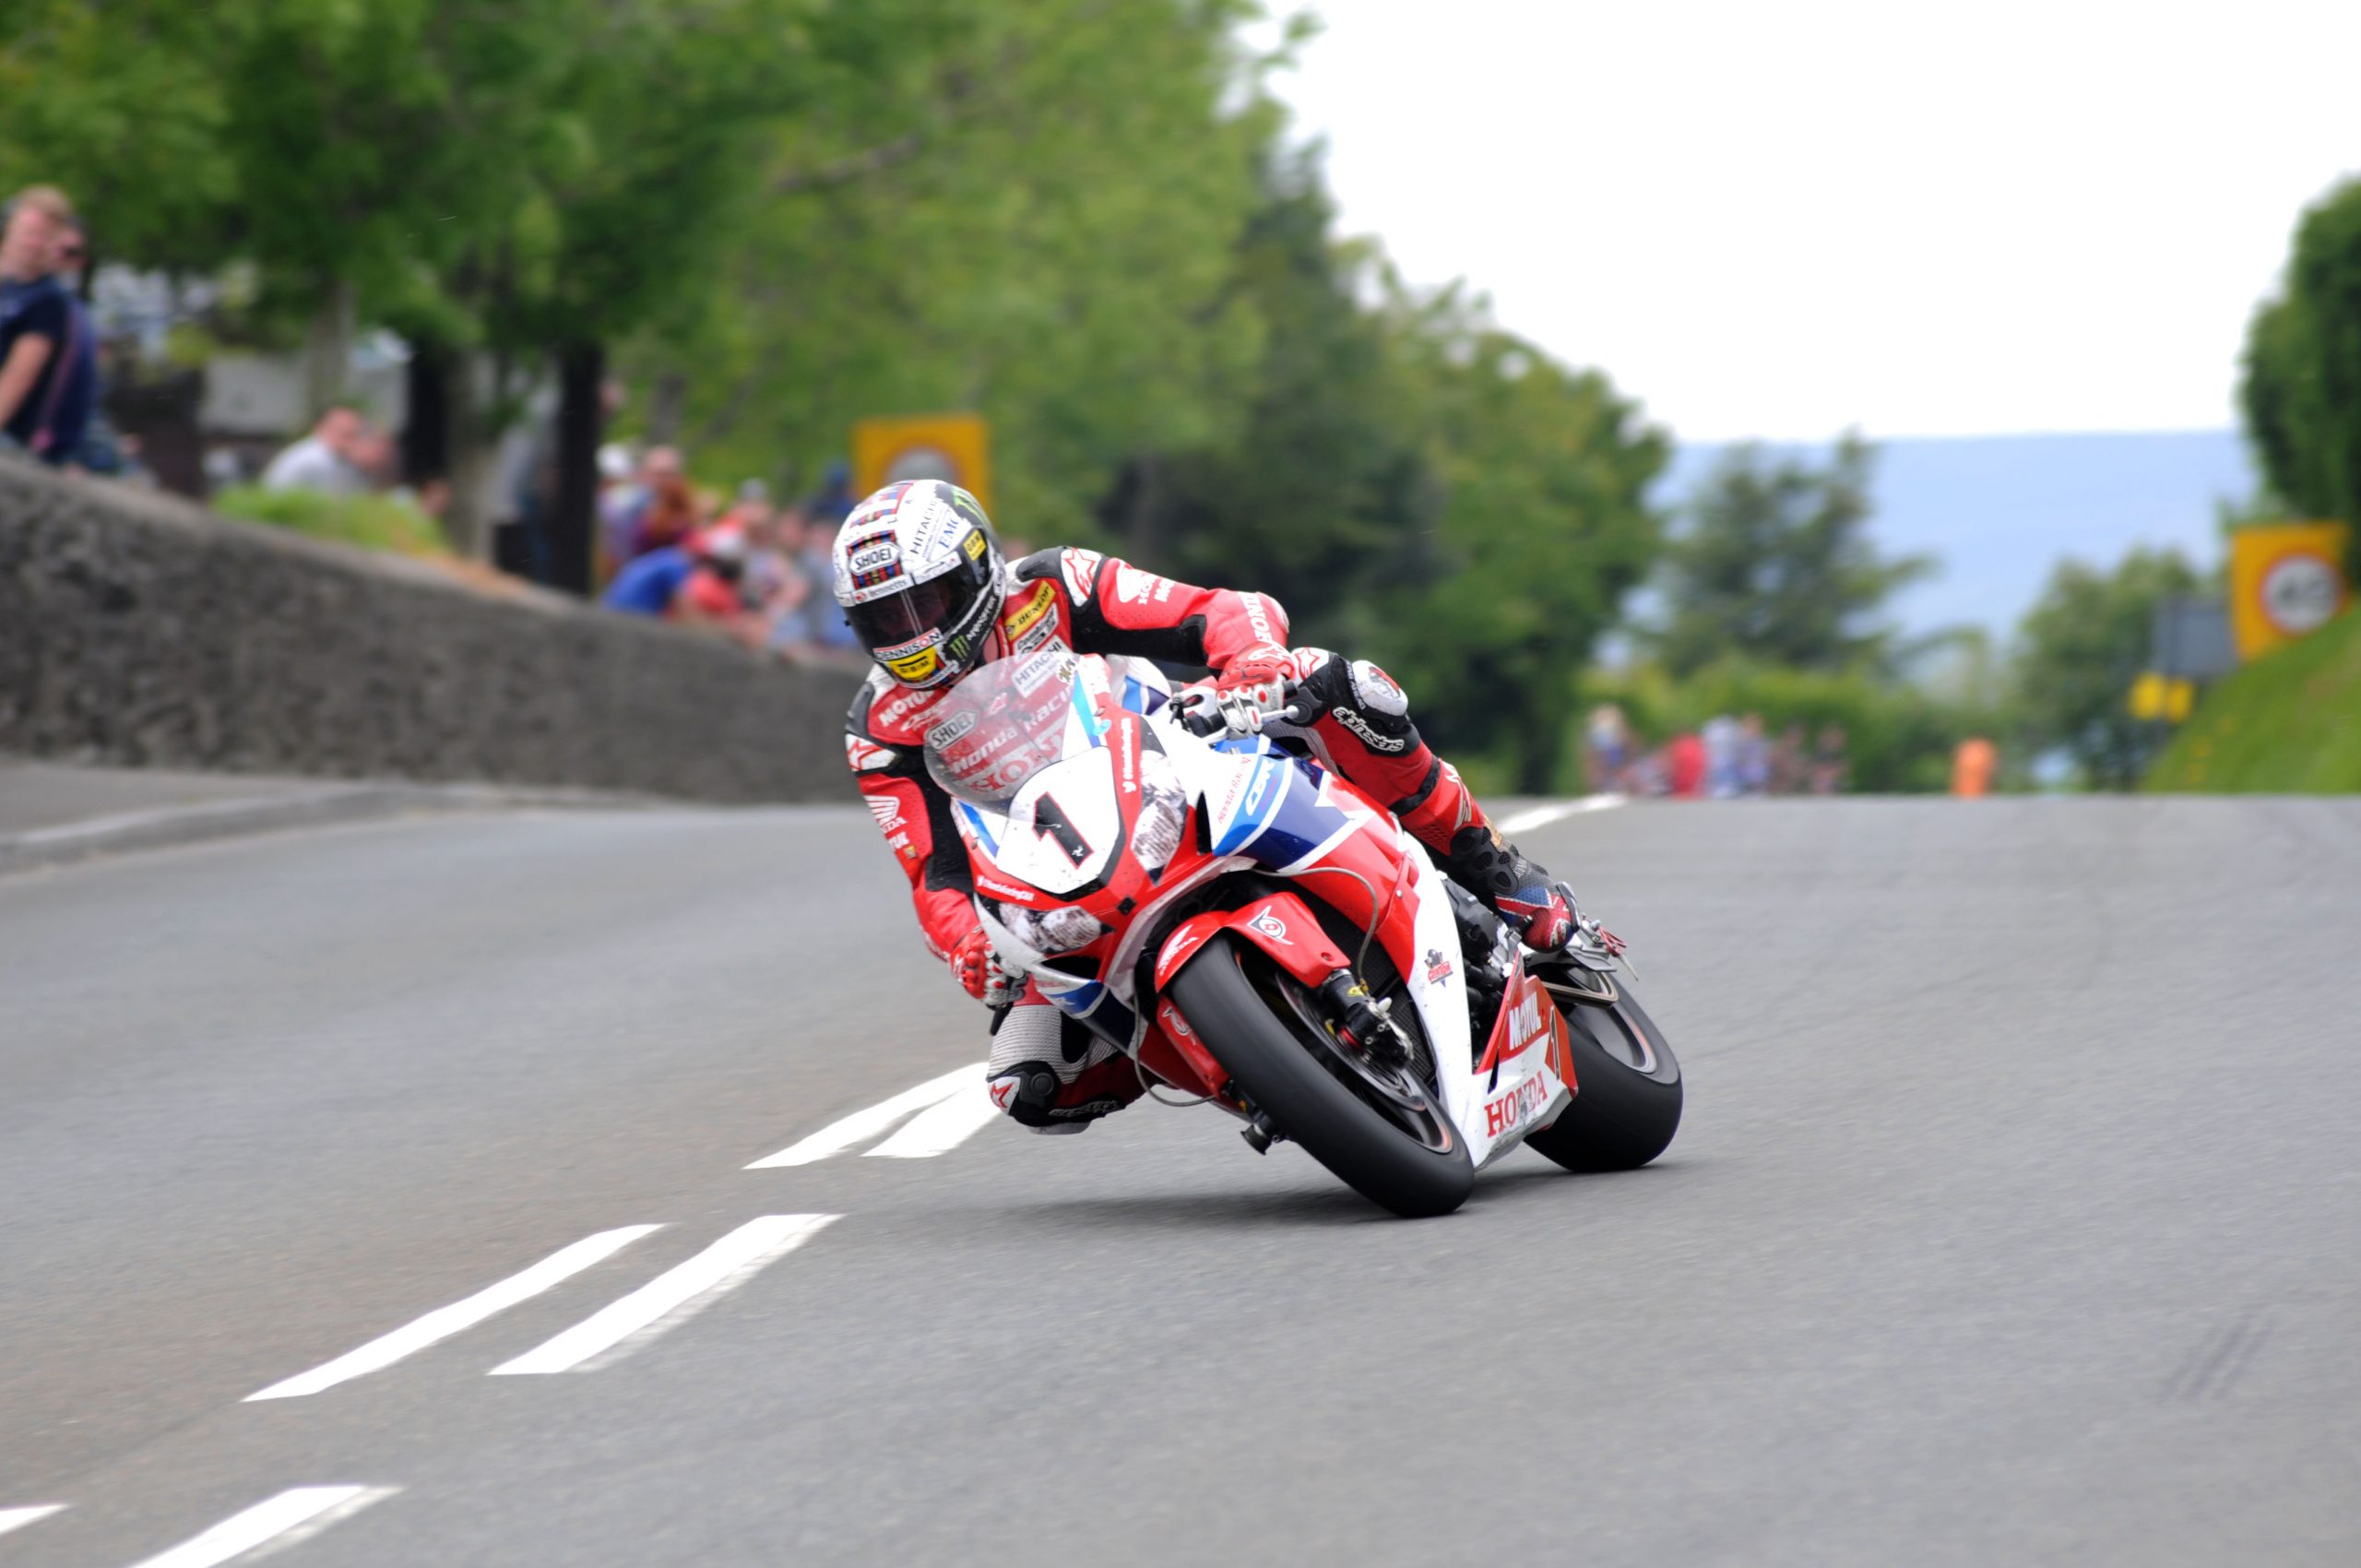 John McGuinness setting a new lap record